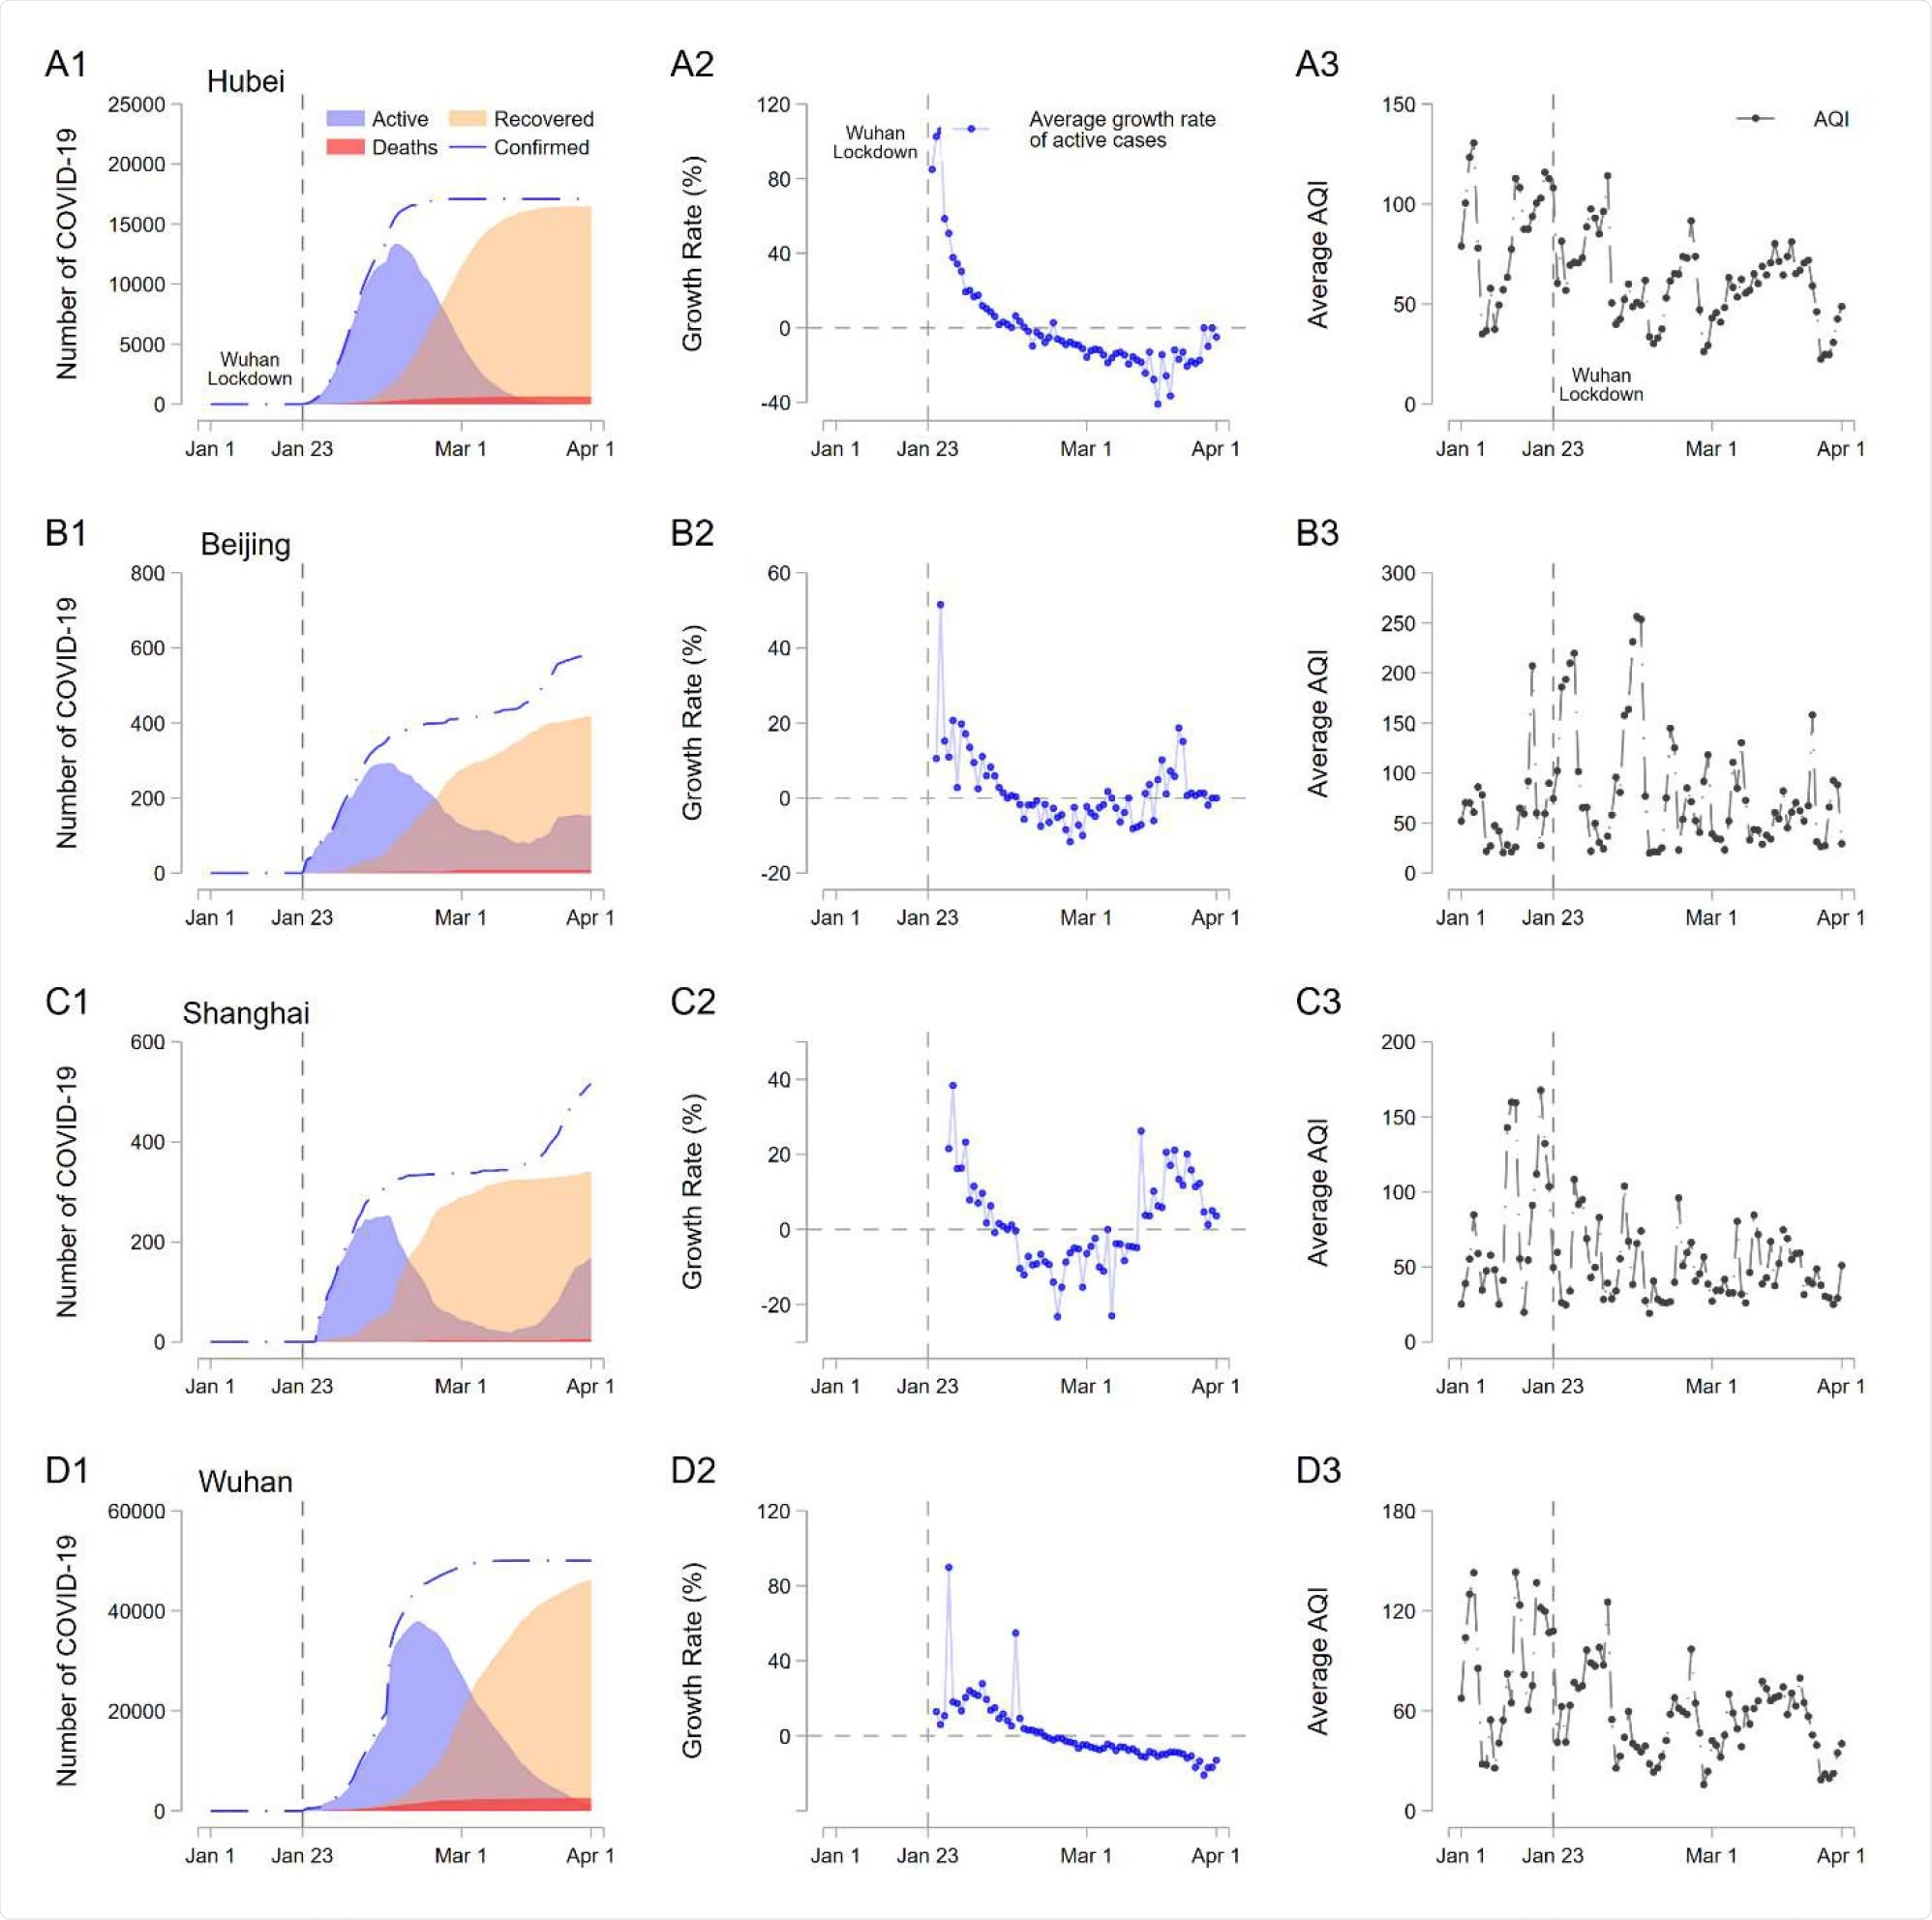 COVID-19, its growth rate, and the Air Quality Index in Hubei Province, Beijing, Shanghai, and Wuhan. These graphs show the COVID-19 outbreak (number of active, recovered, and deceased from COVID-19), the infection growth rate, and AQI in each region.